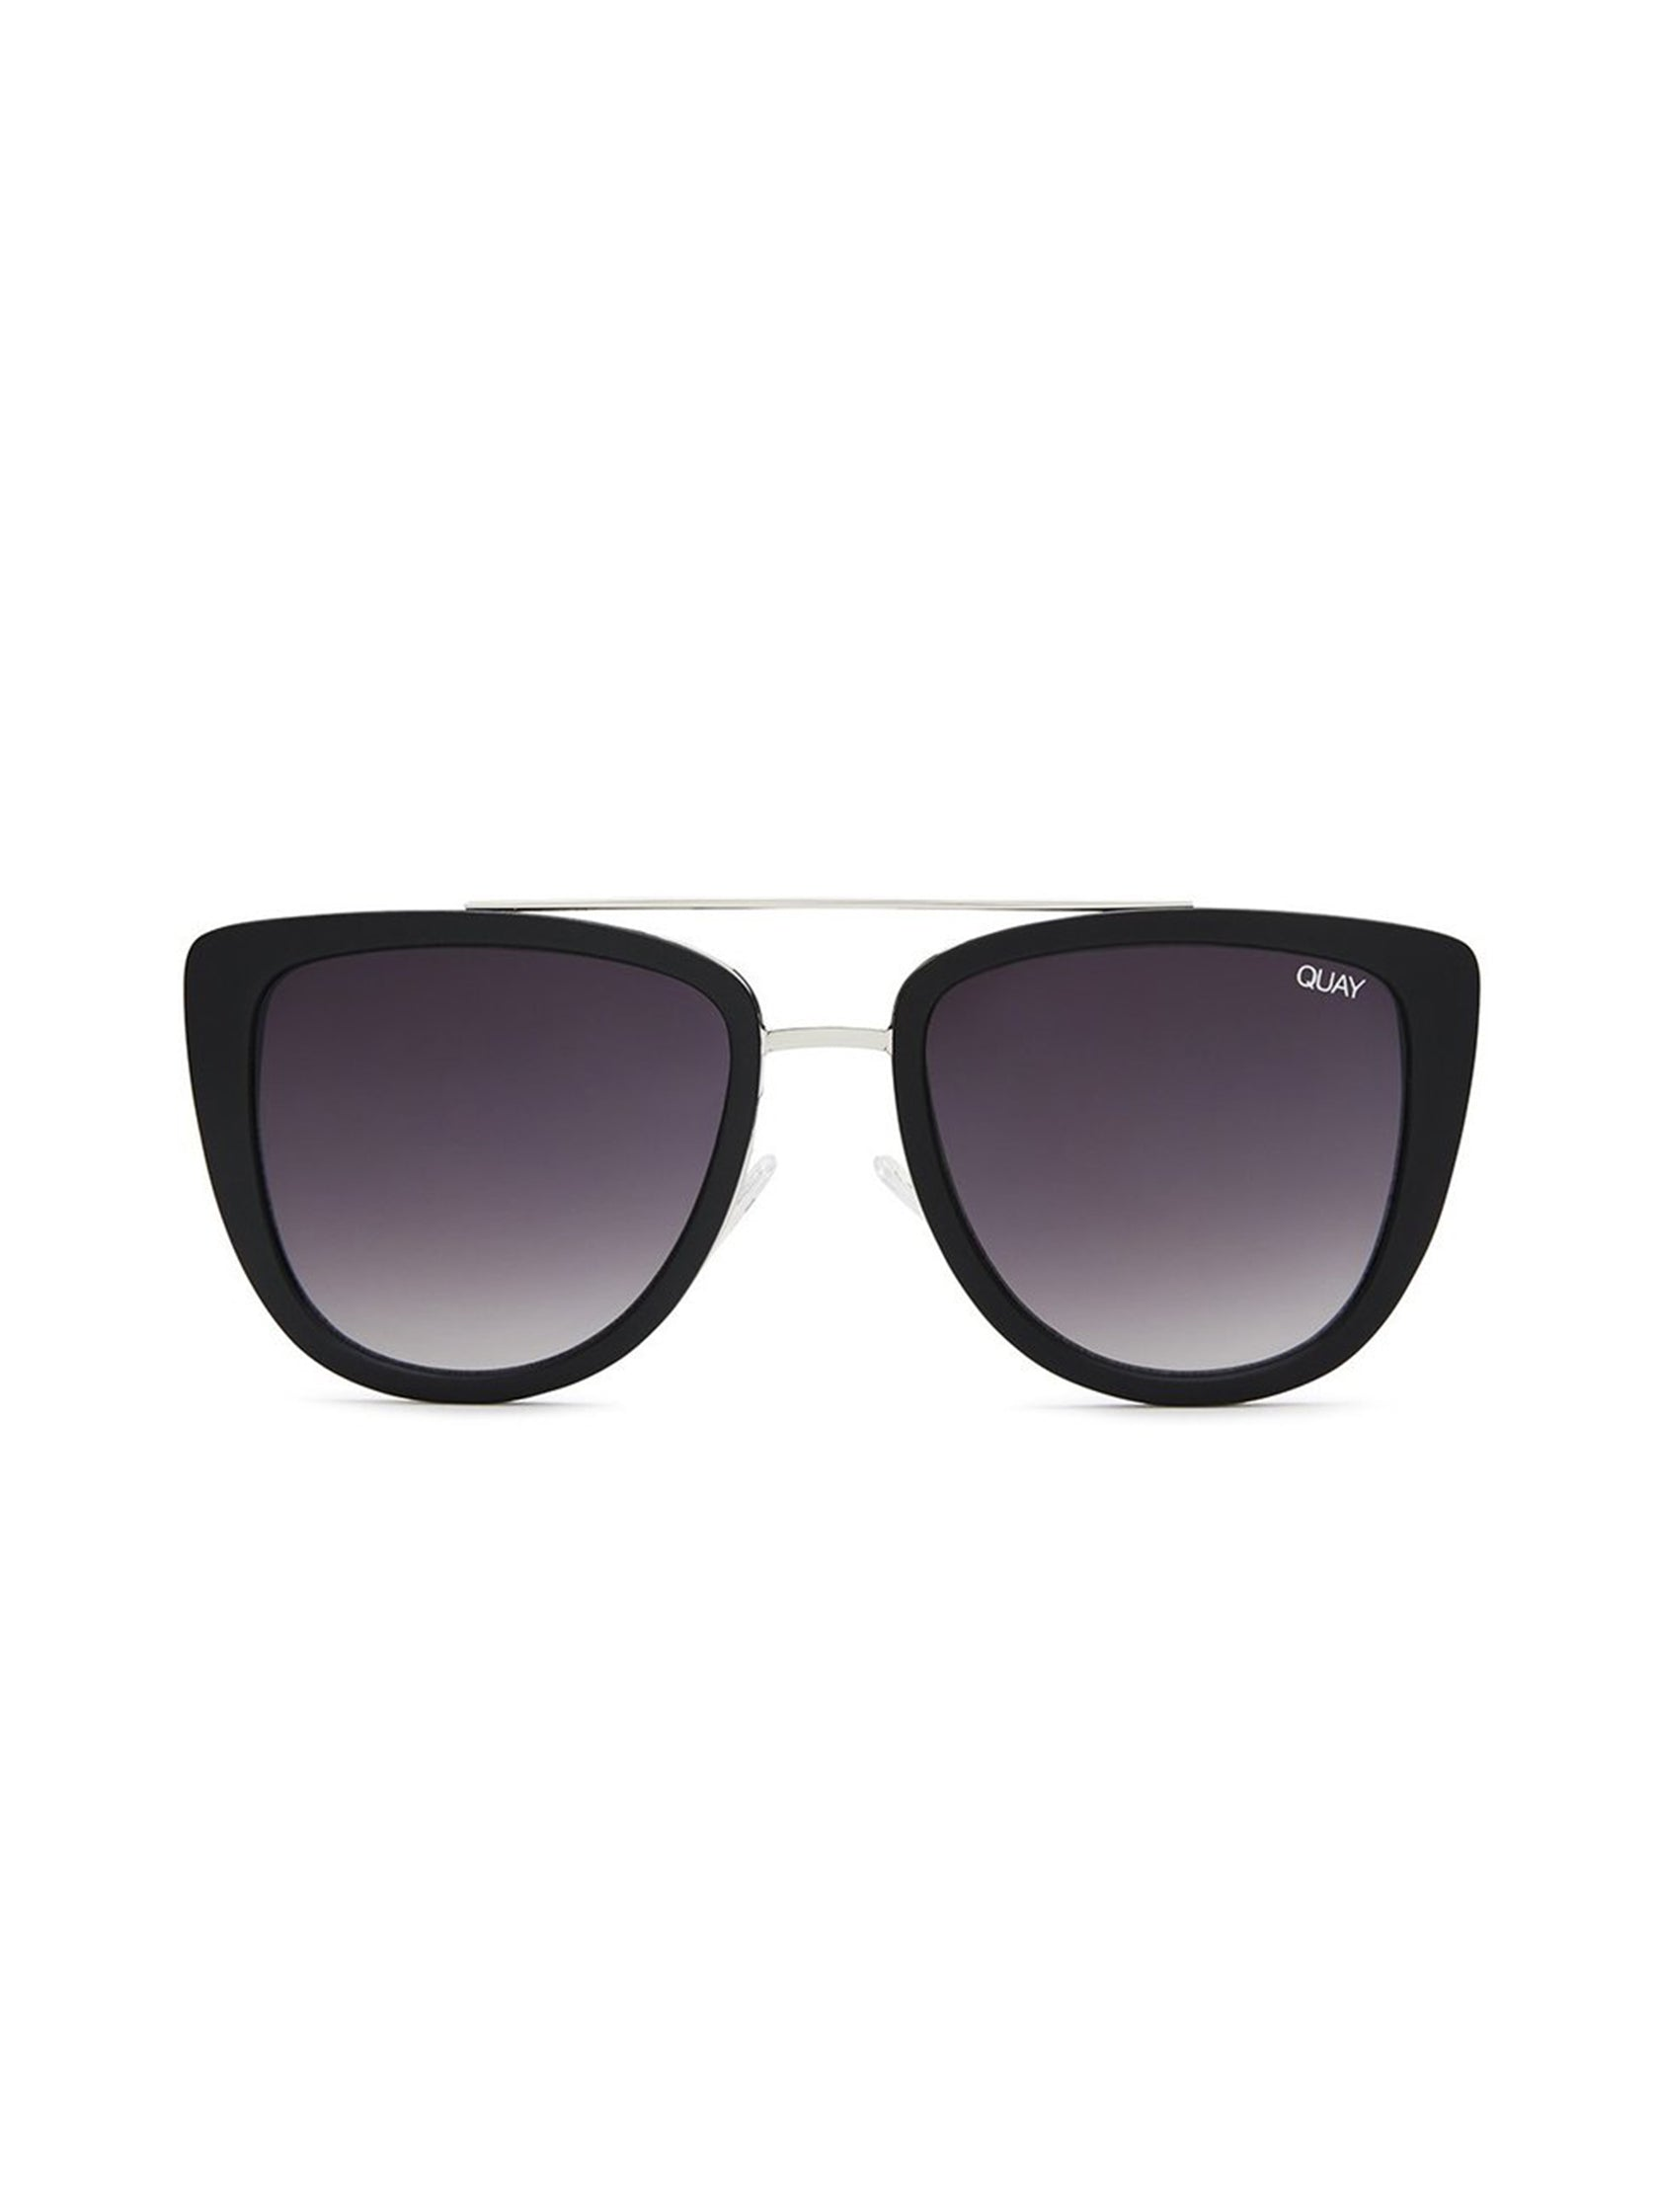 2d2a8be4bf Girl outfit in a sunglasses rental from Quay Australia called French Kiss  55mm Cat Eye Sunglasses